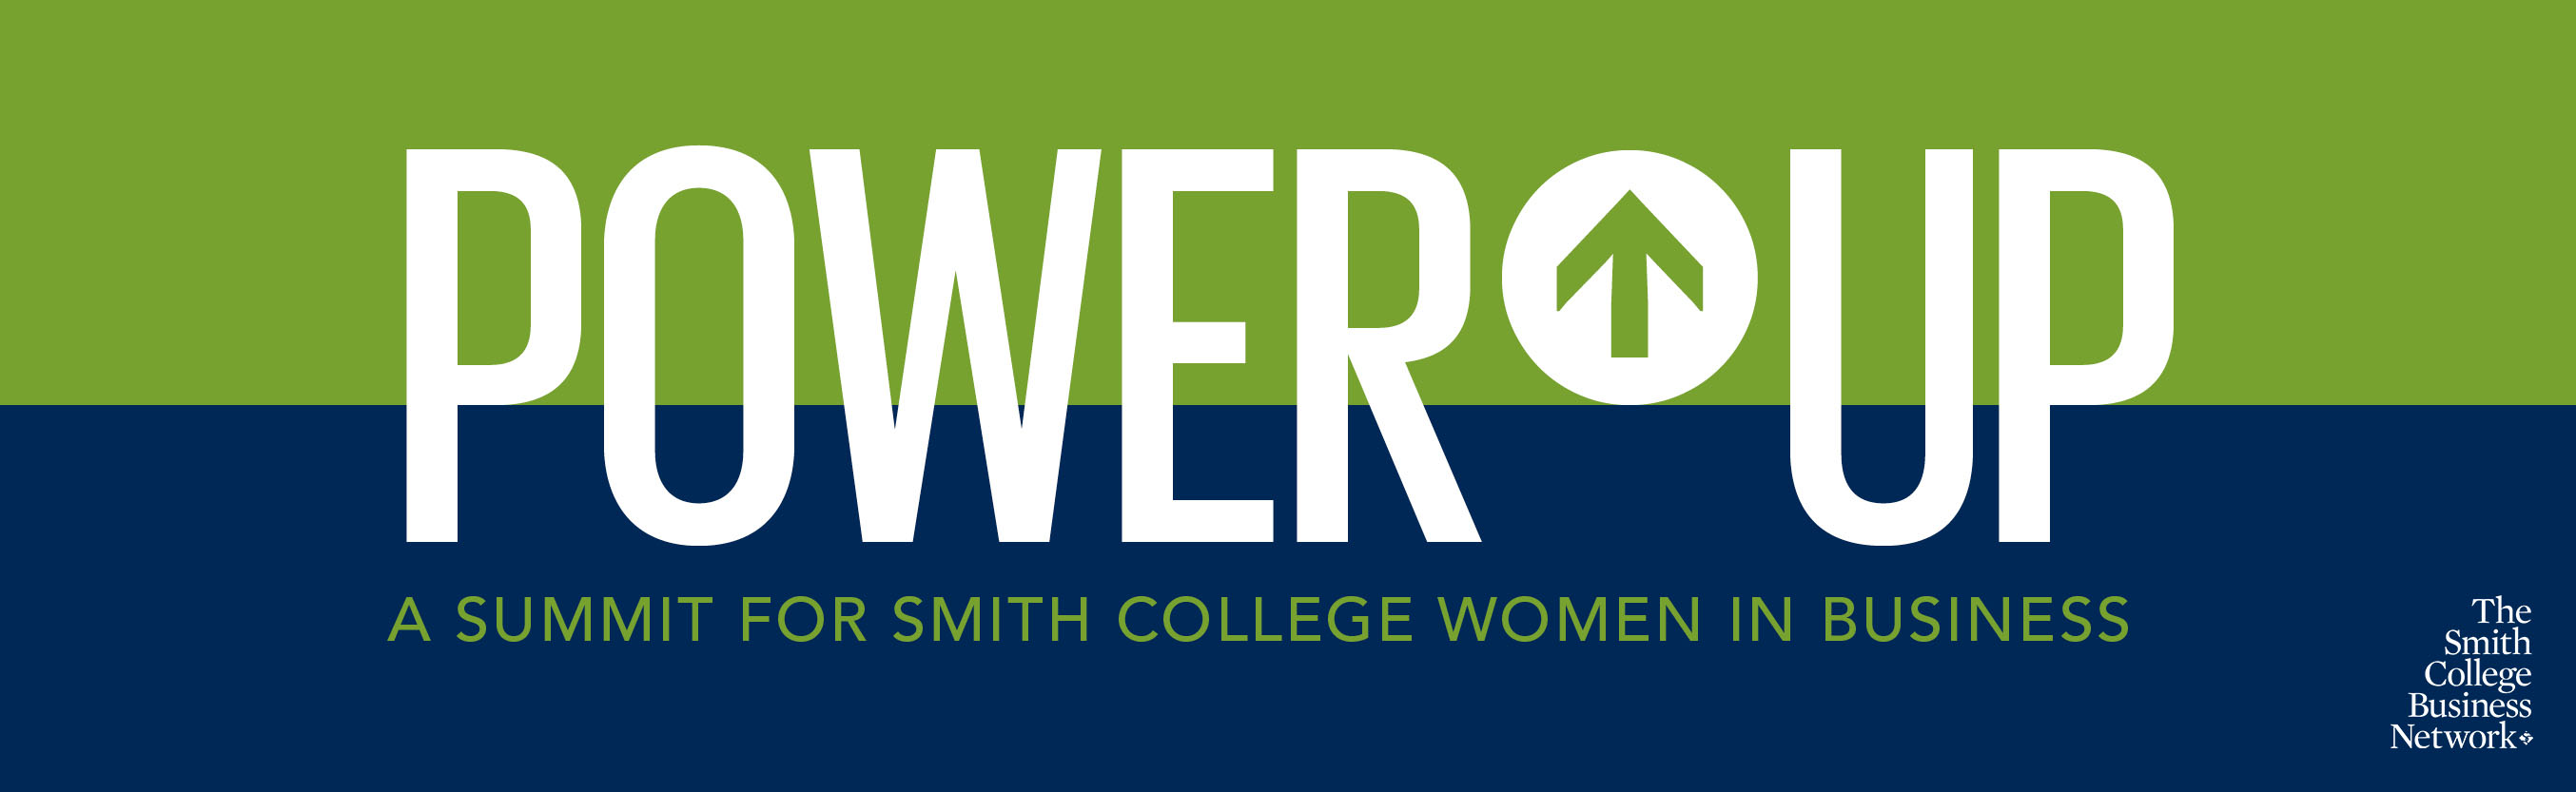 POWER UP: a Summit for Smith College Women in Business